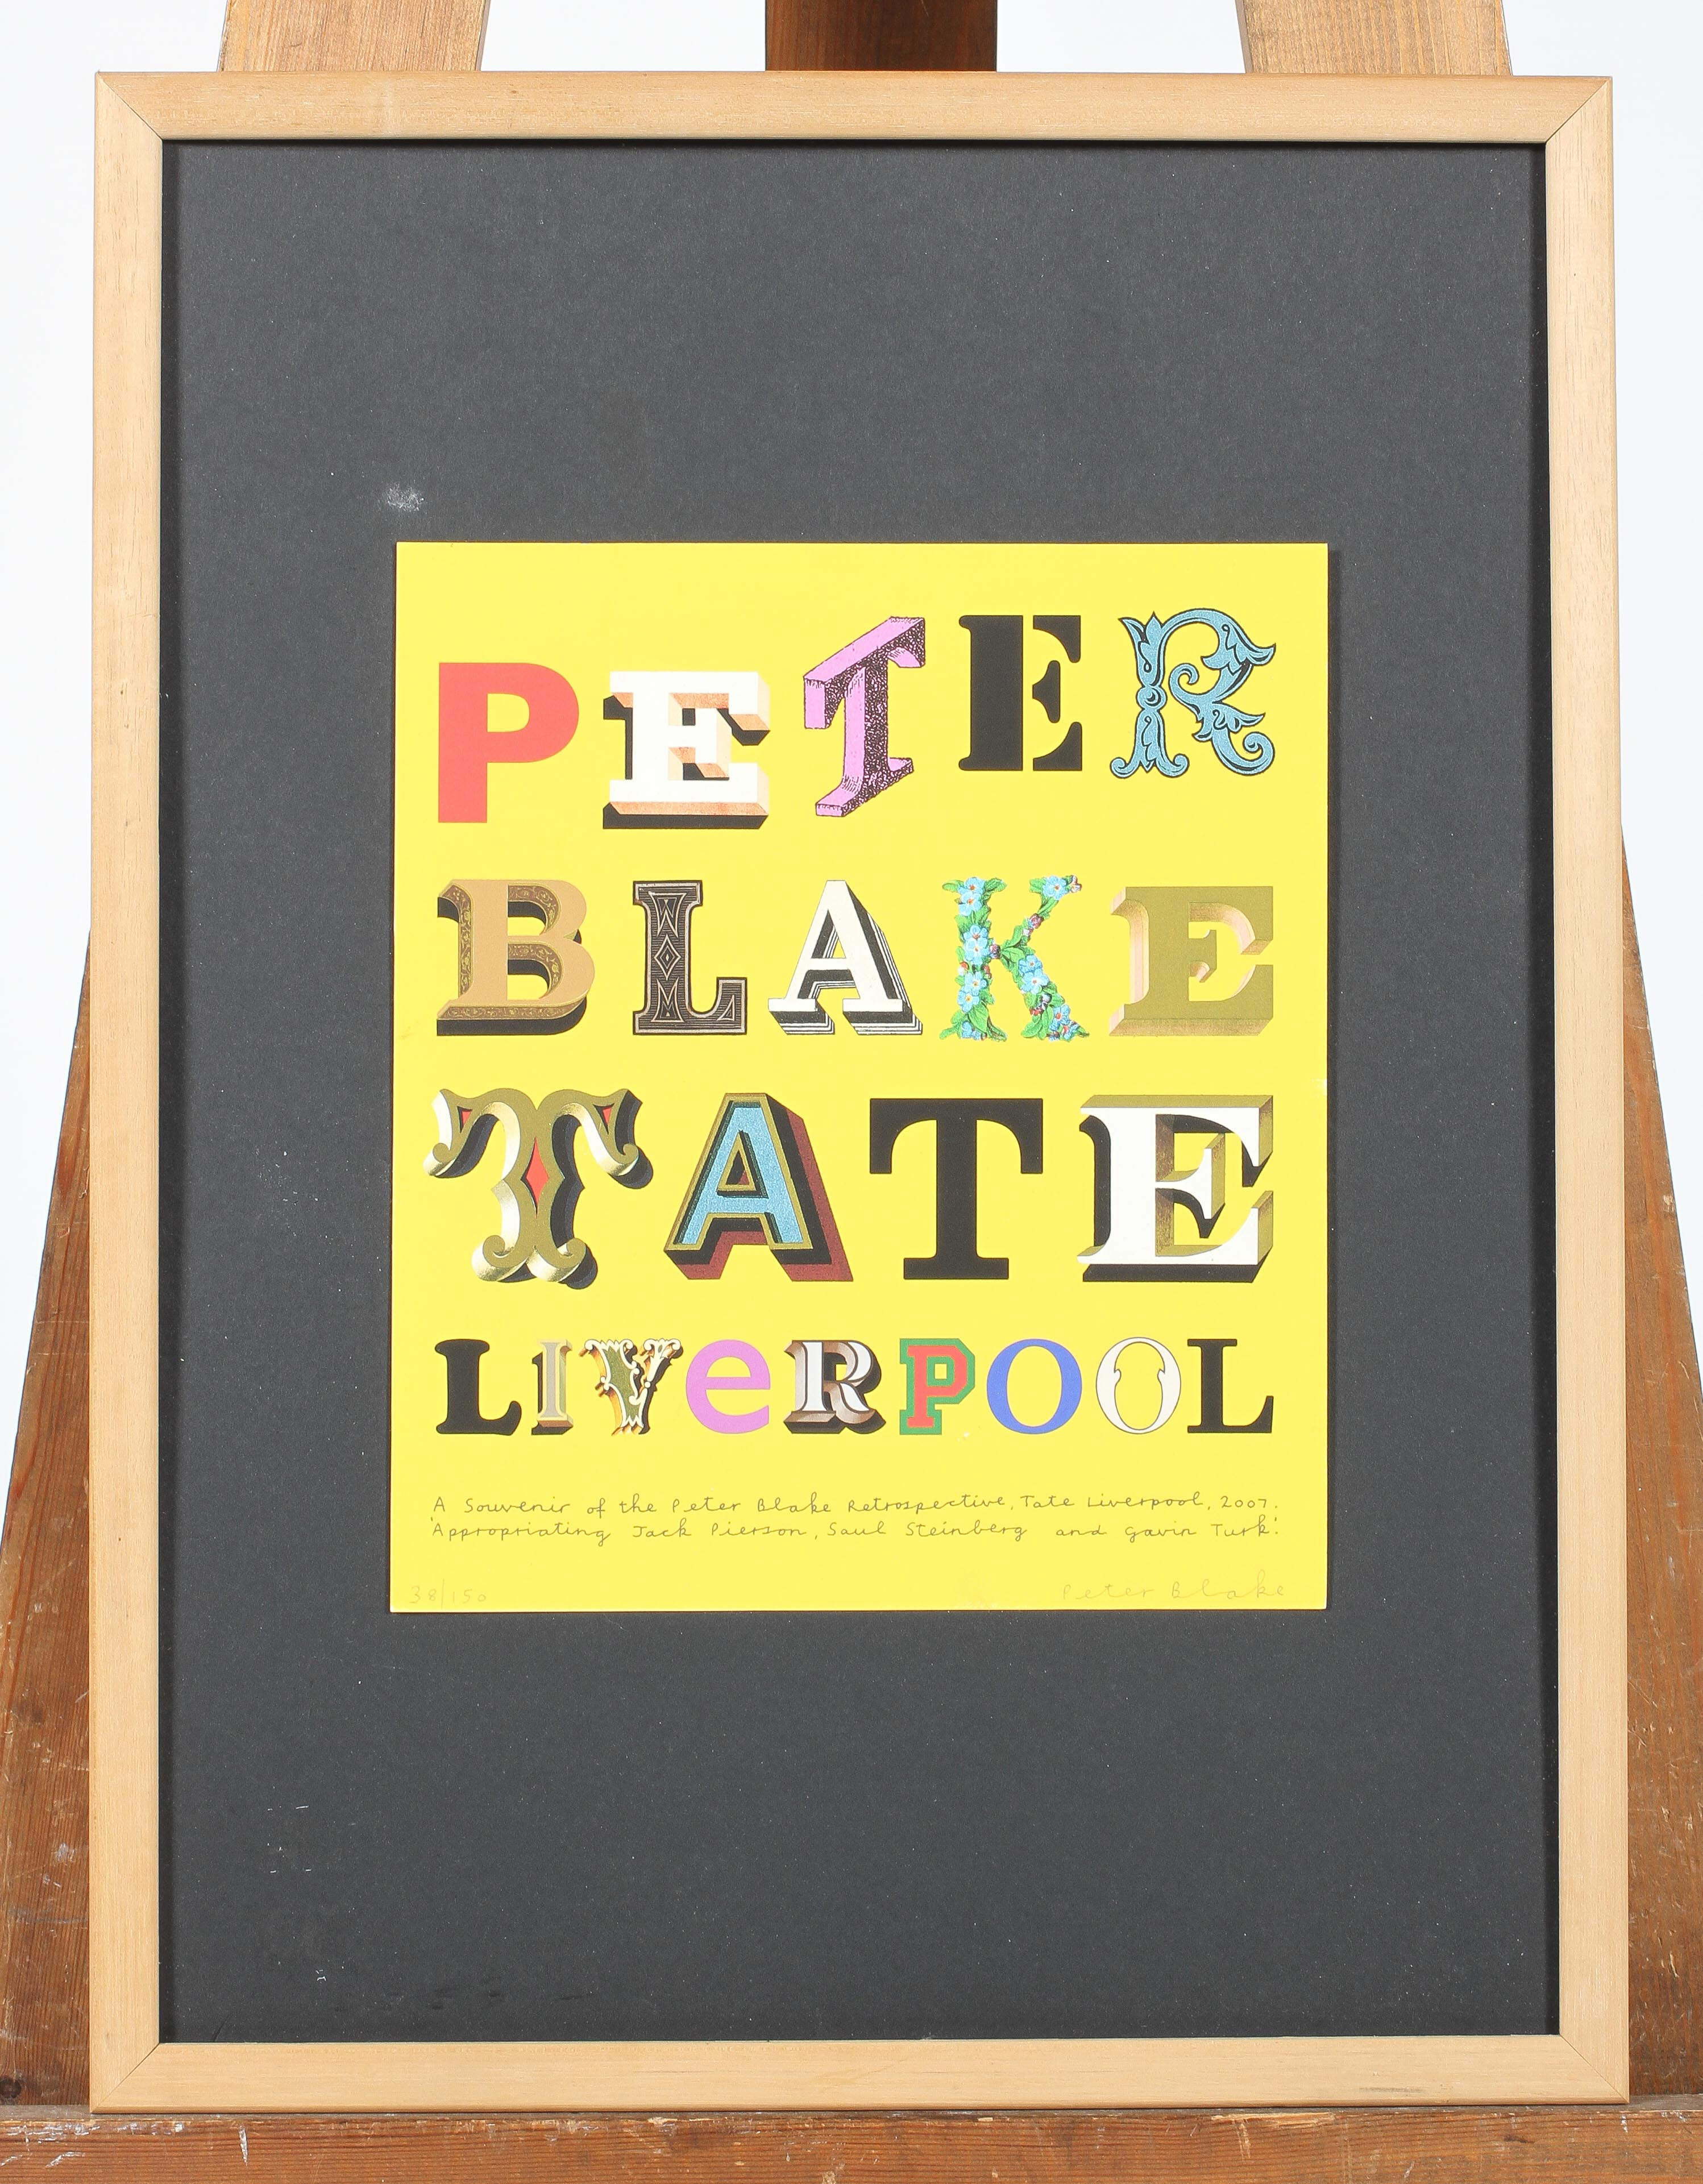 A Peter Blake Tate Liverpool,Retrospective limited edition print, signed in pencil by Blake, - Image 2 of 2